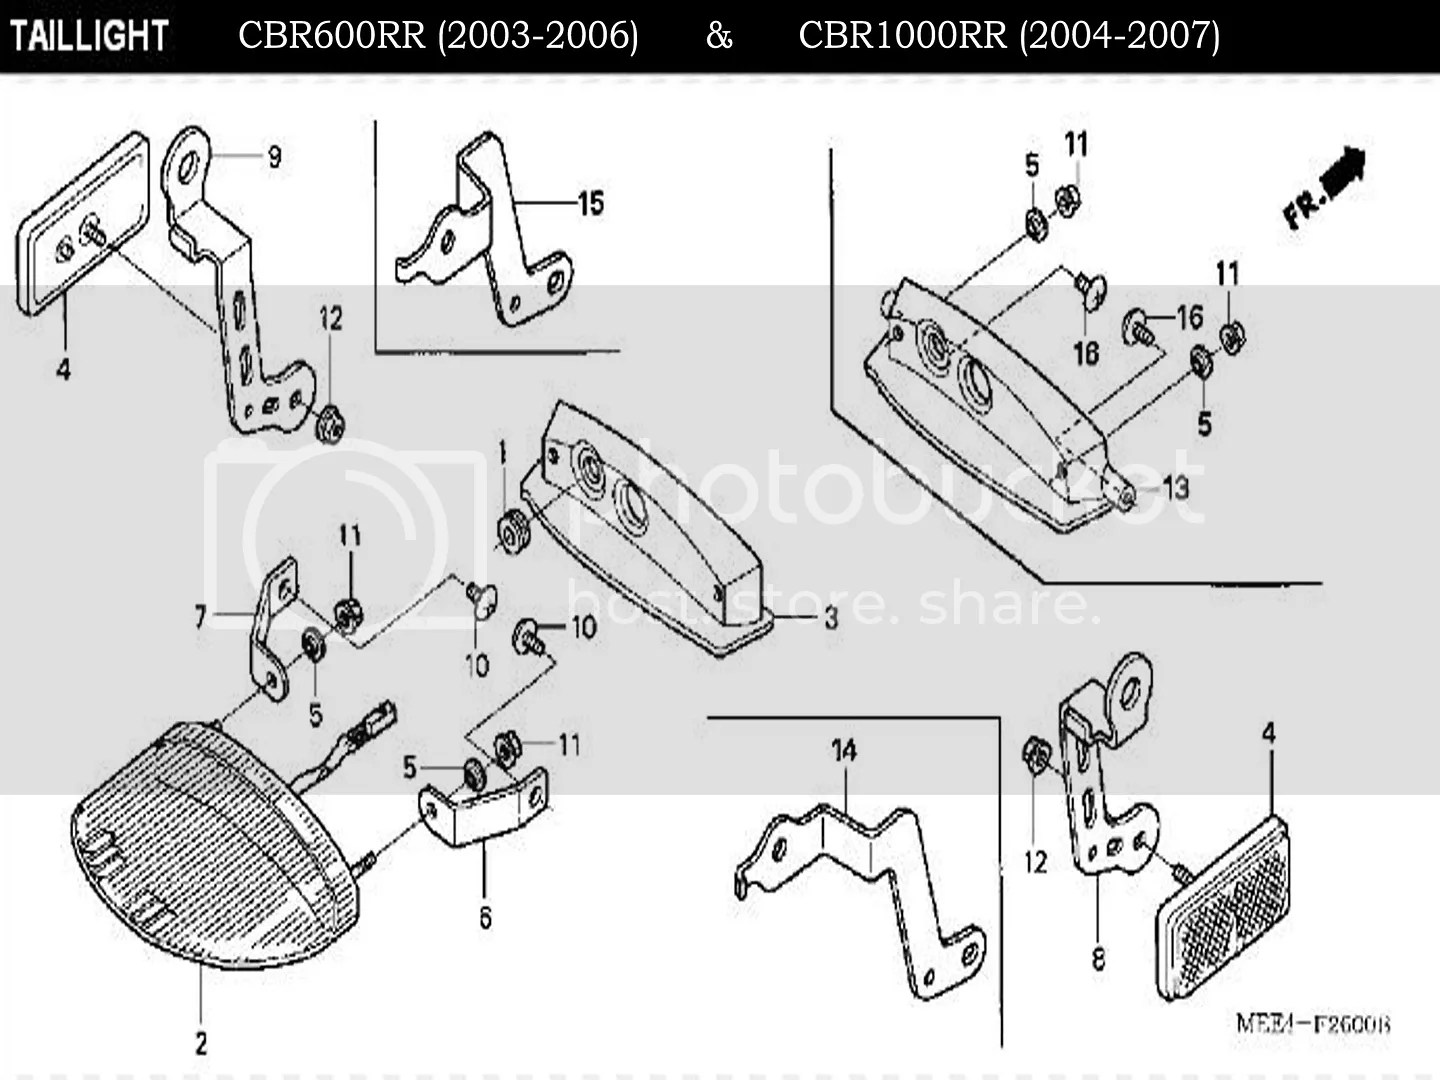 tags: #2013 mini cooper wiring diagram#wiring diagram 2005 mini cooper#main  relay 2003 mini cooper#2007 mini cooper fuse diagram#mini cooper fuse box